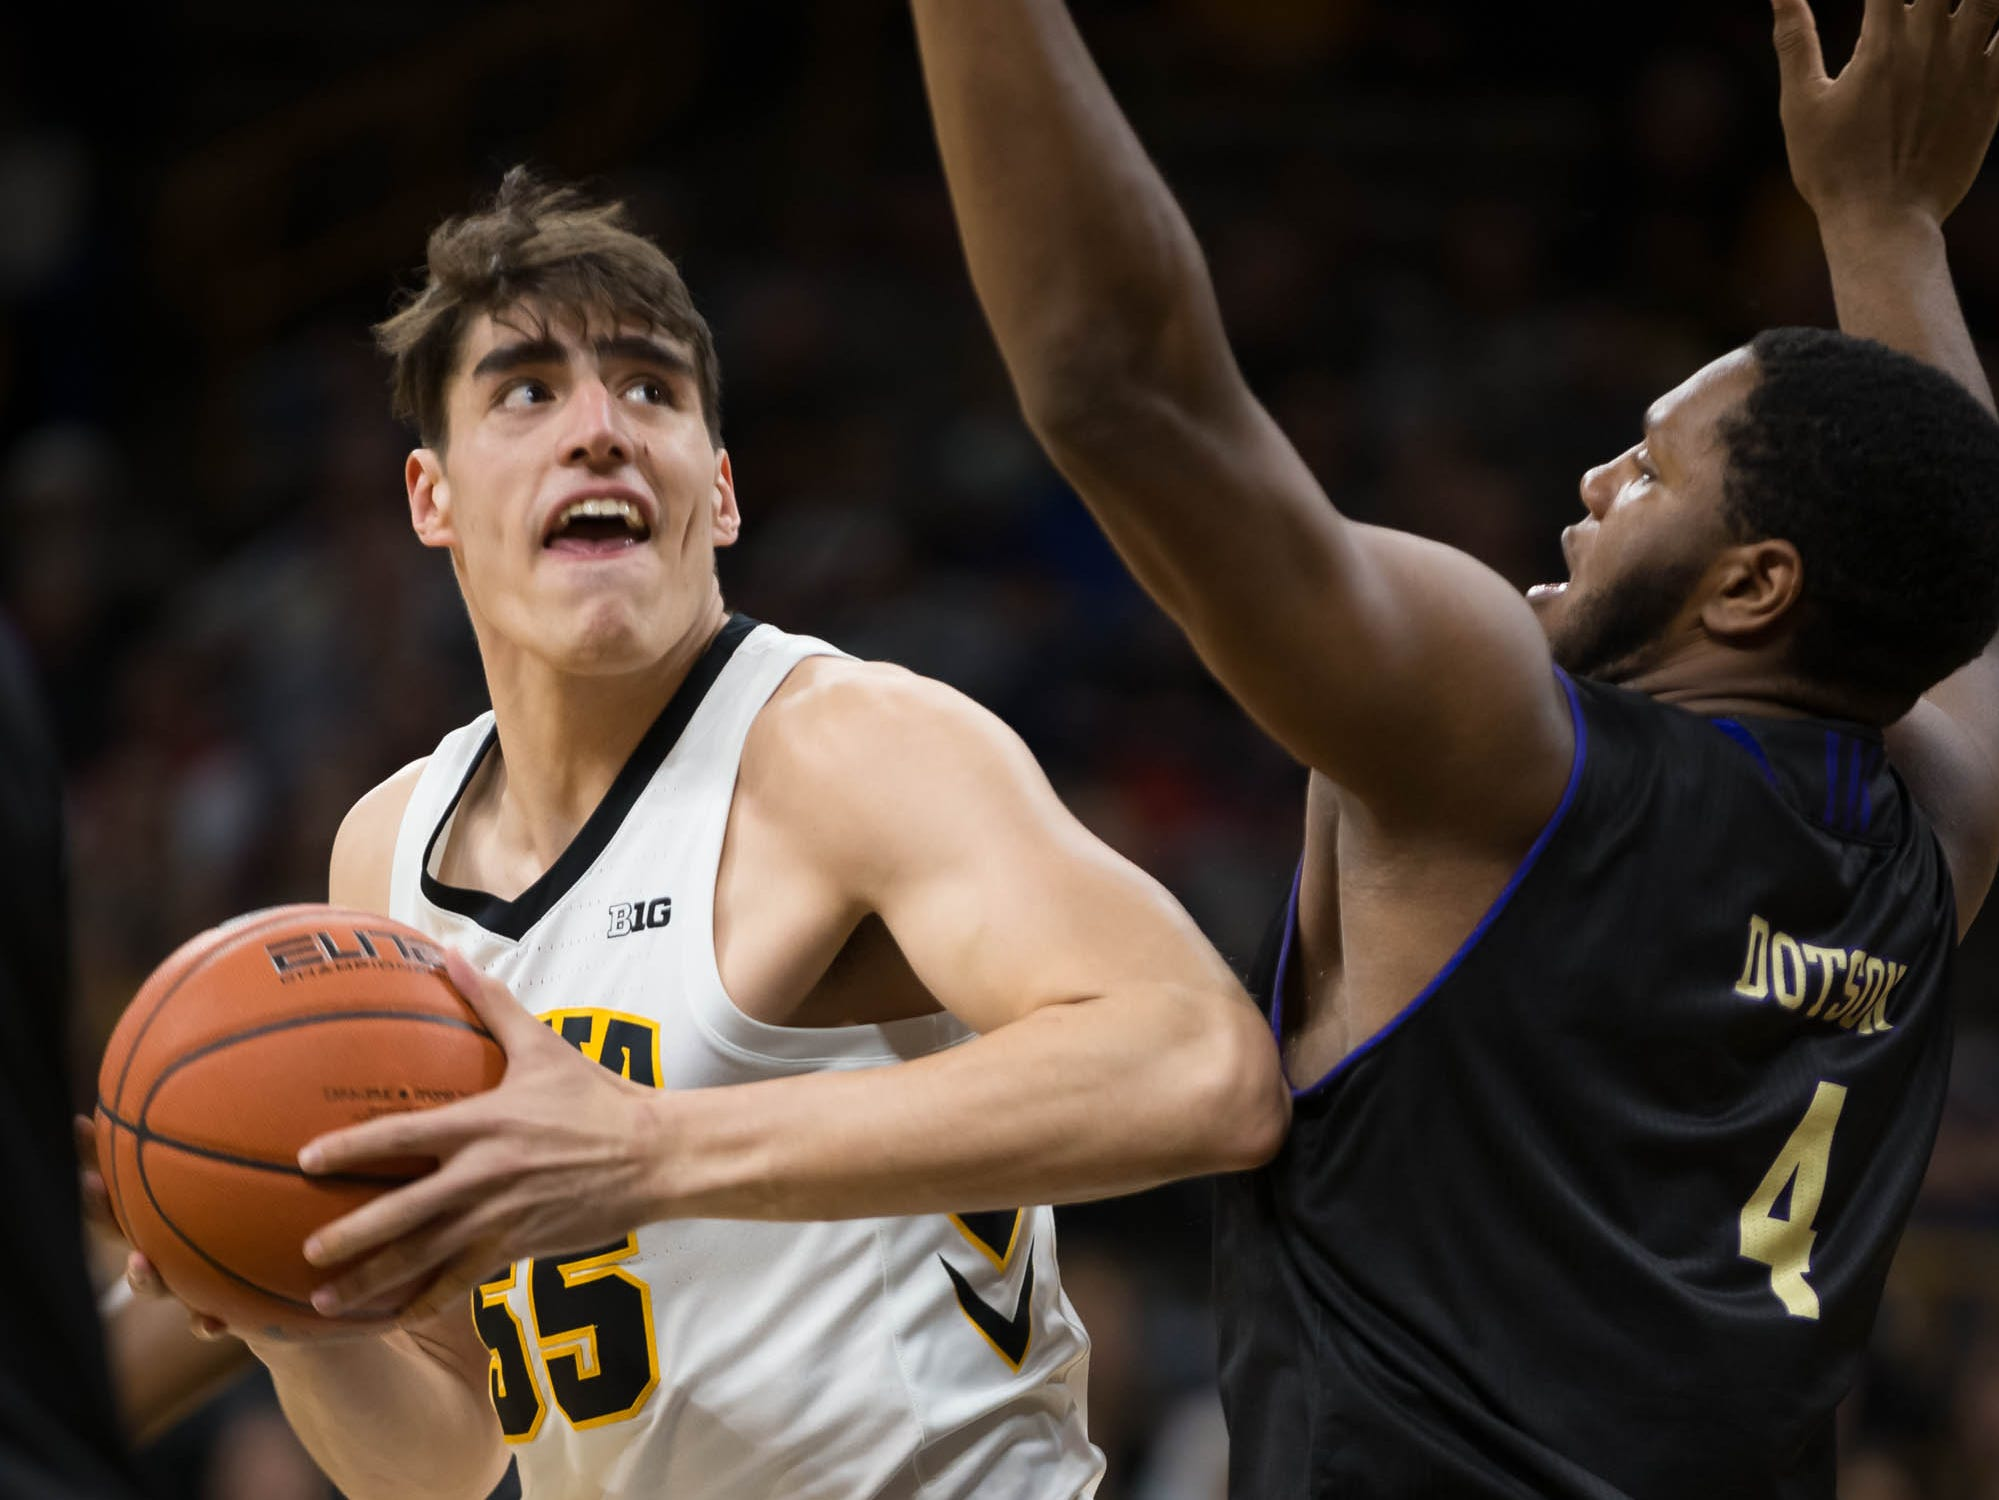 Iowa sophomore forward Luka Garza (55) drives against Western Carolina junior forward Carlos Dotson (4) in the first half at Carver Hawkeye Arena in Iowa City on Tuesday, Dec. 18, 2018.